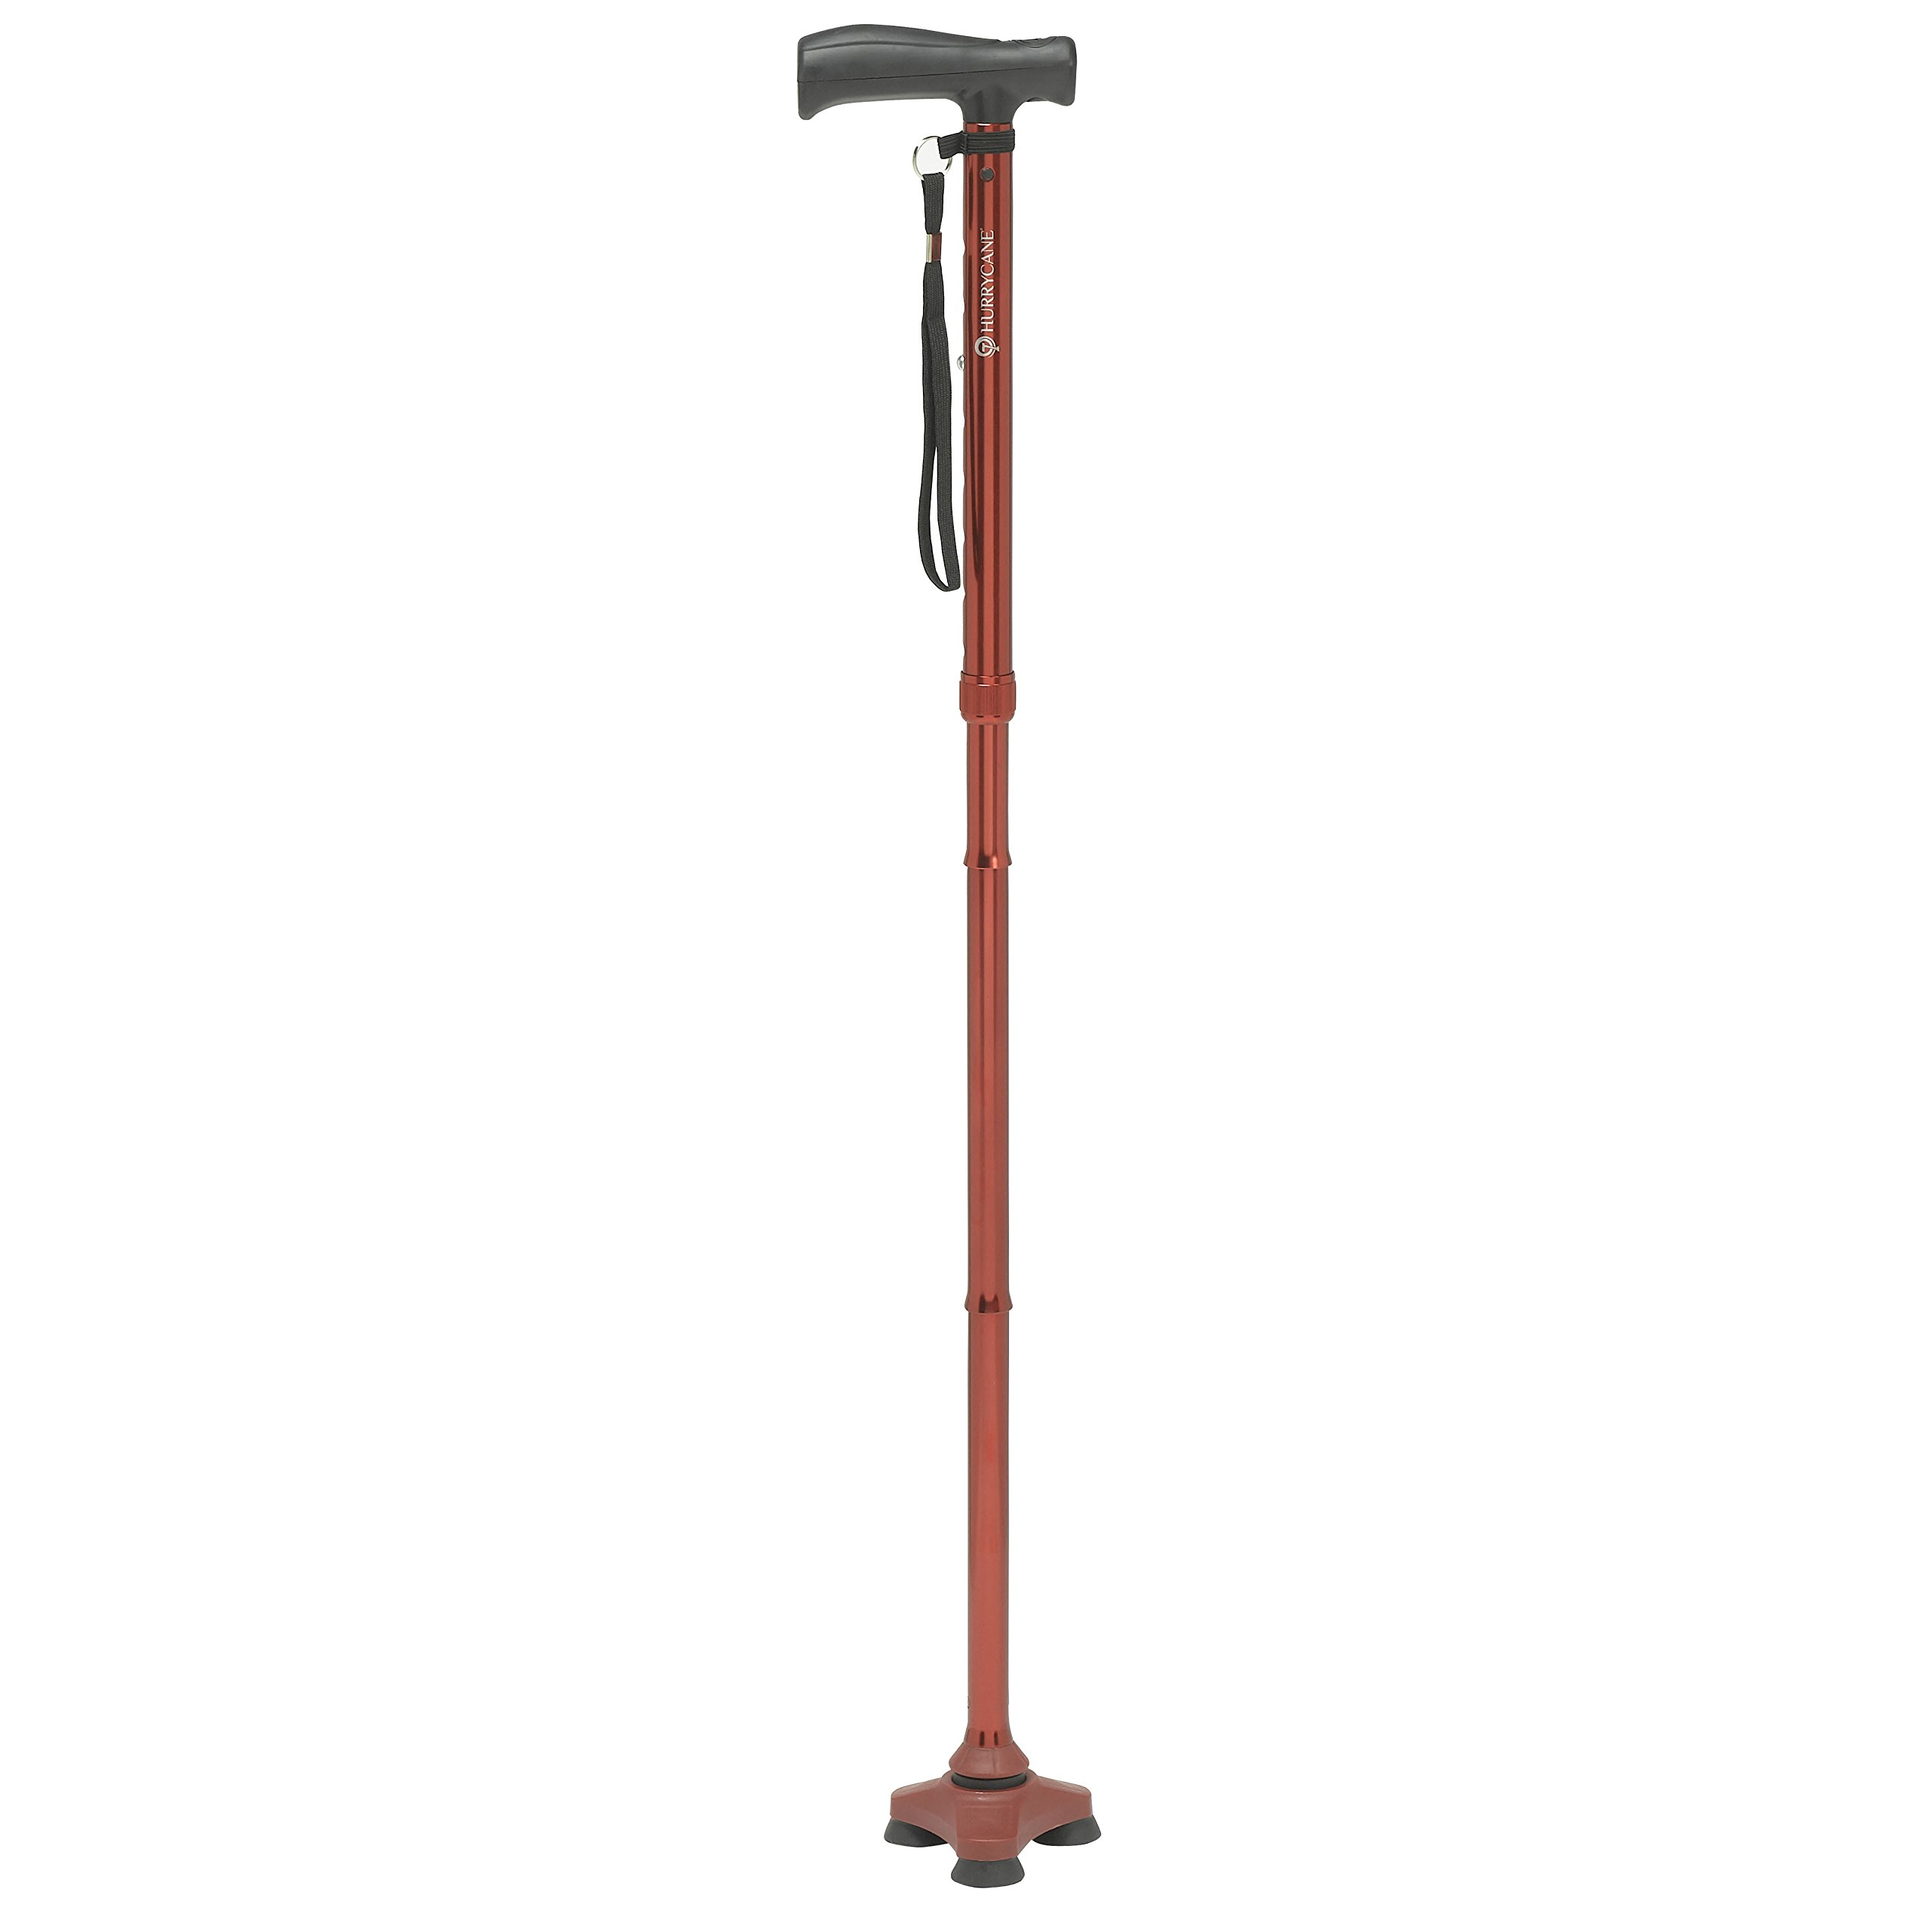 HurryCane Freedom Edition Folding Cane with T Handle, Roadrunner Red